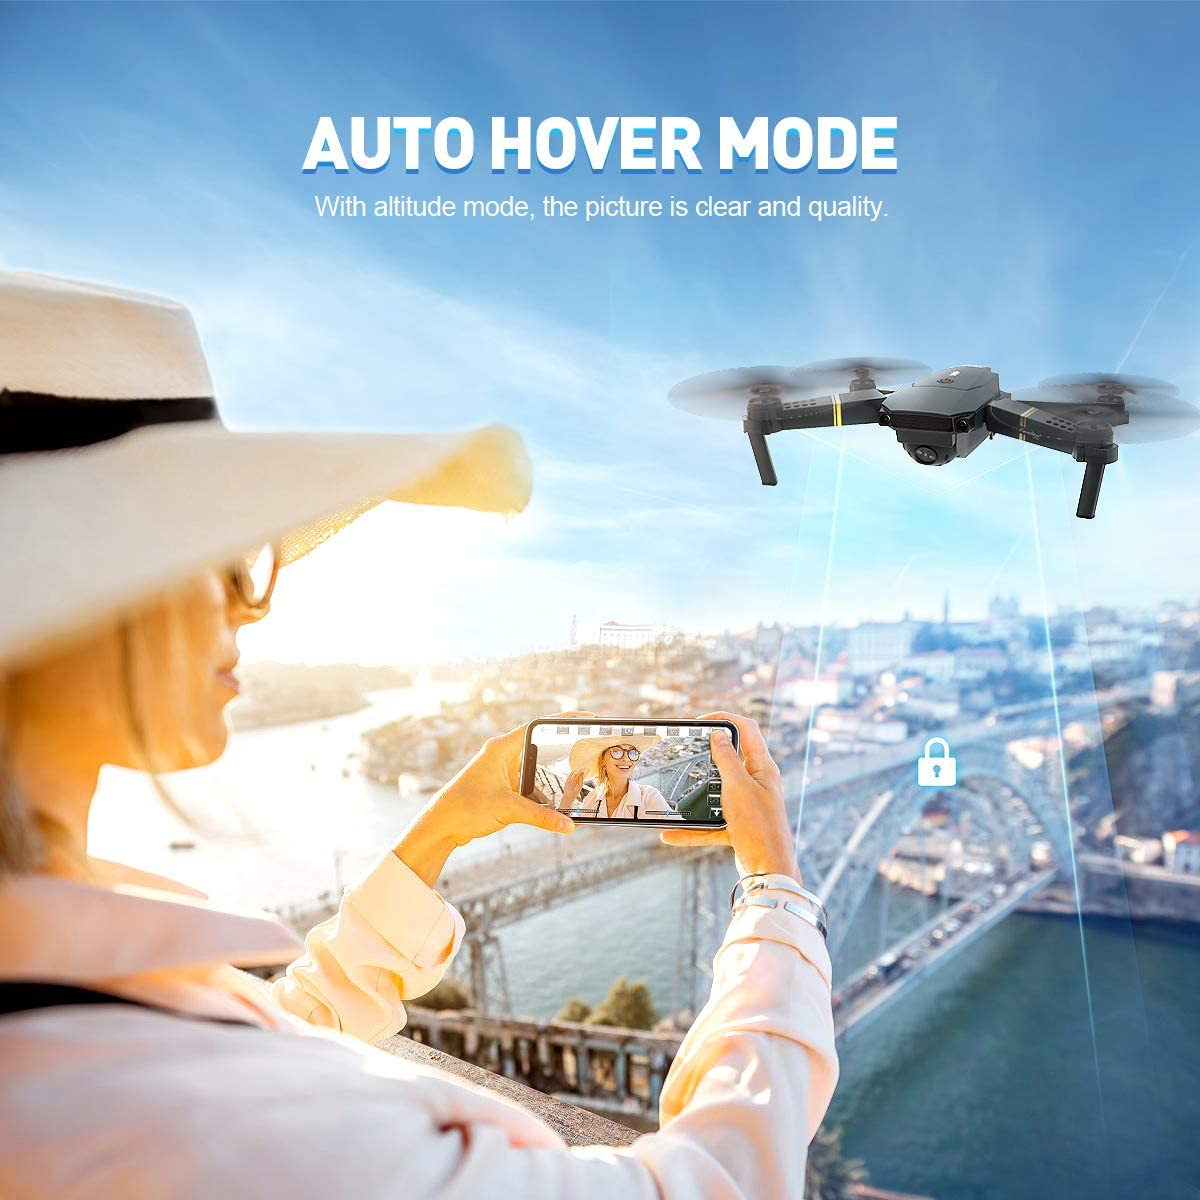 Eachine E58 pocket drone review about altitude mode and auto hover mode